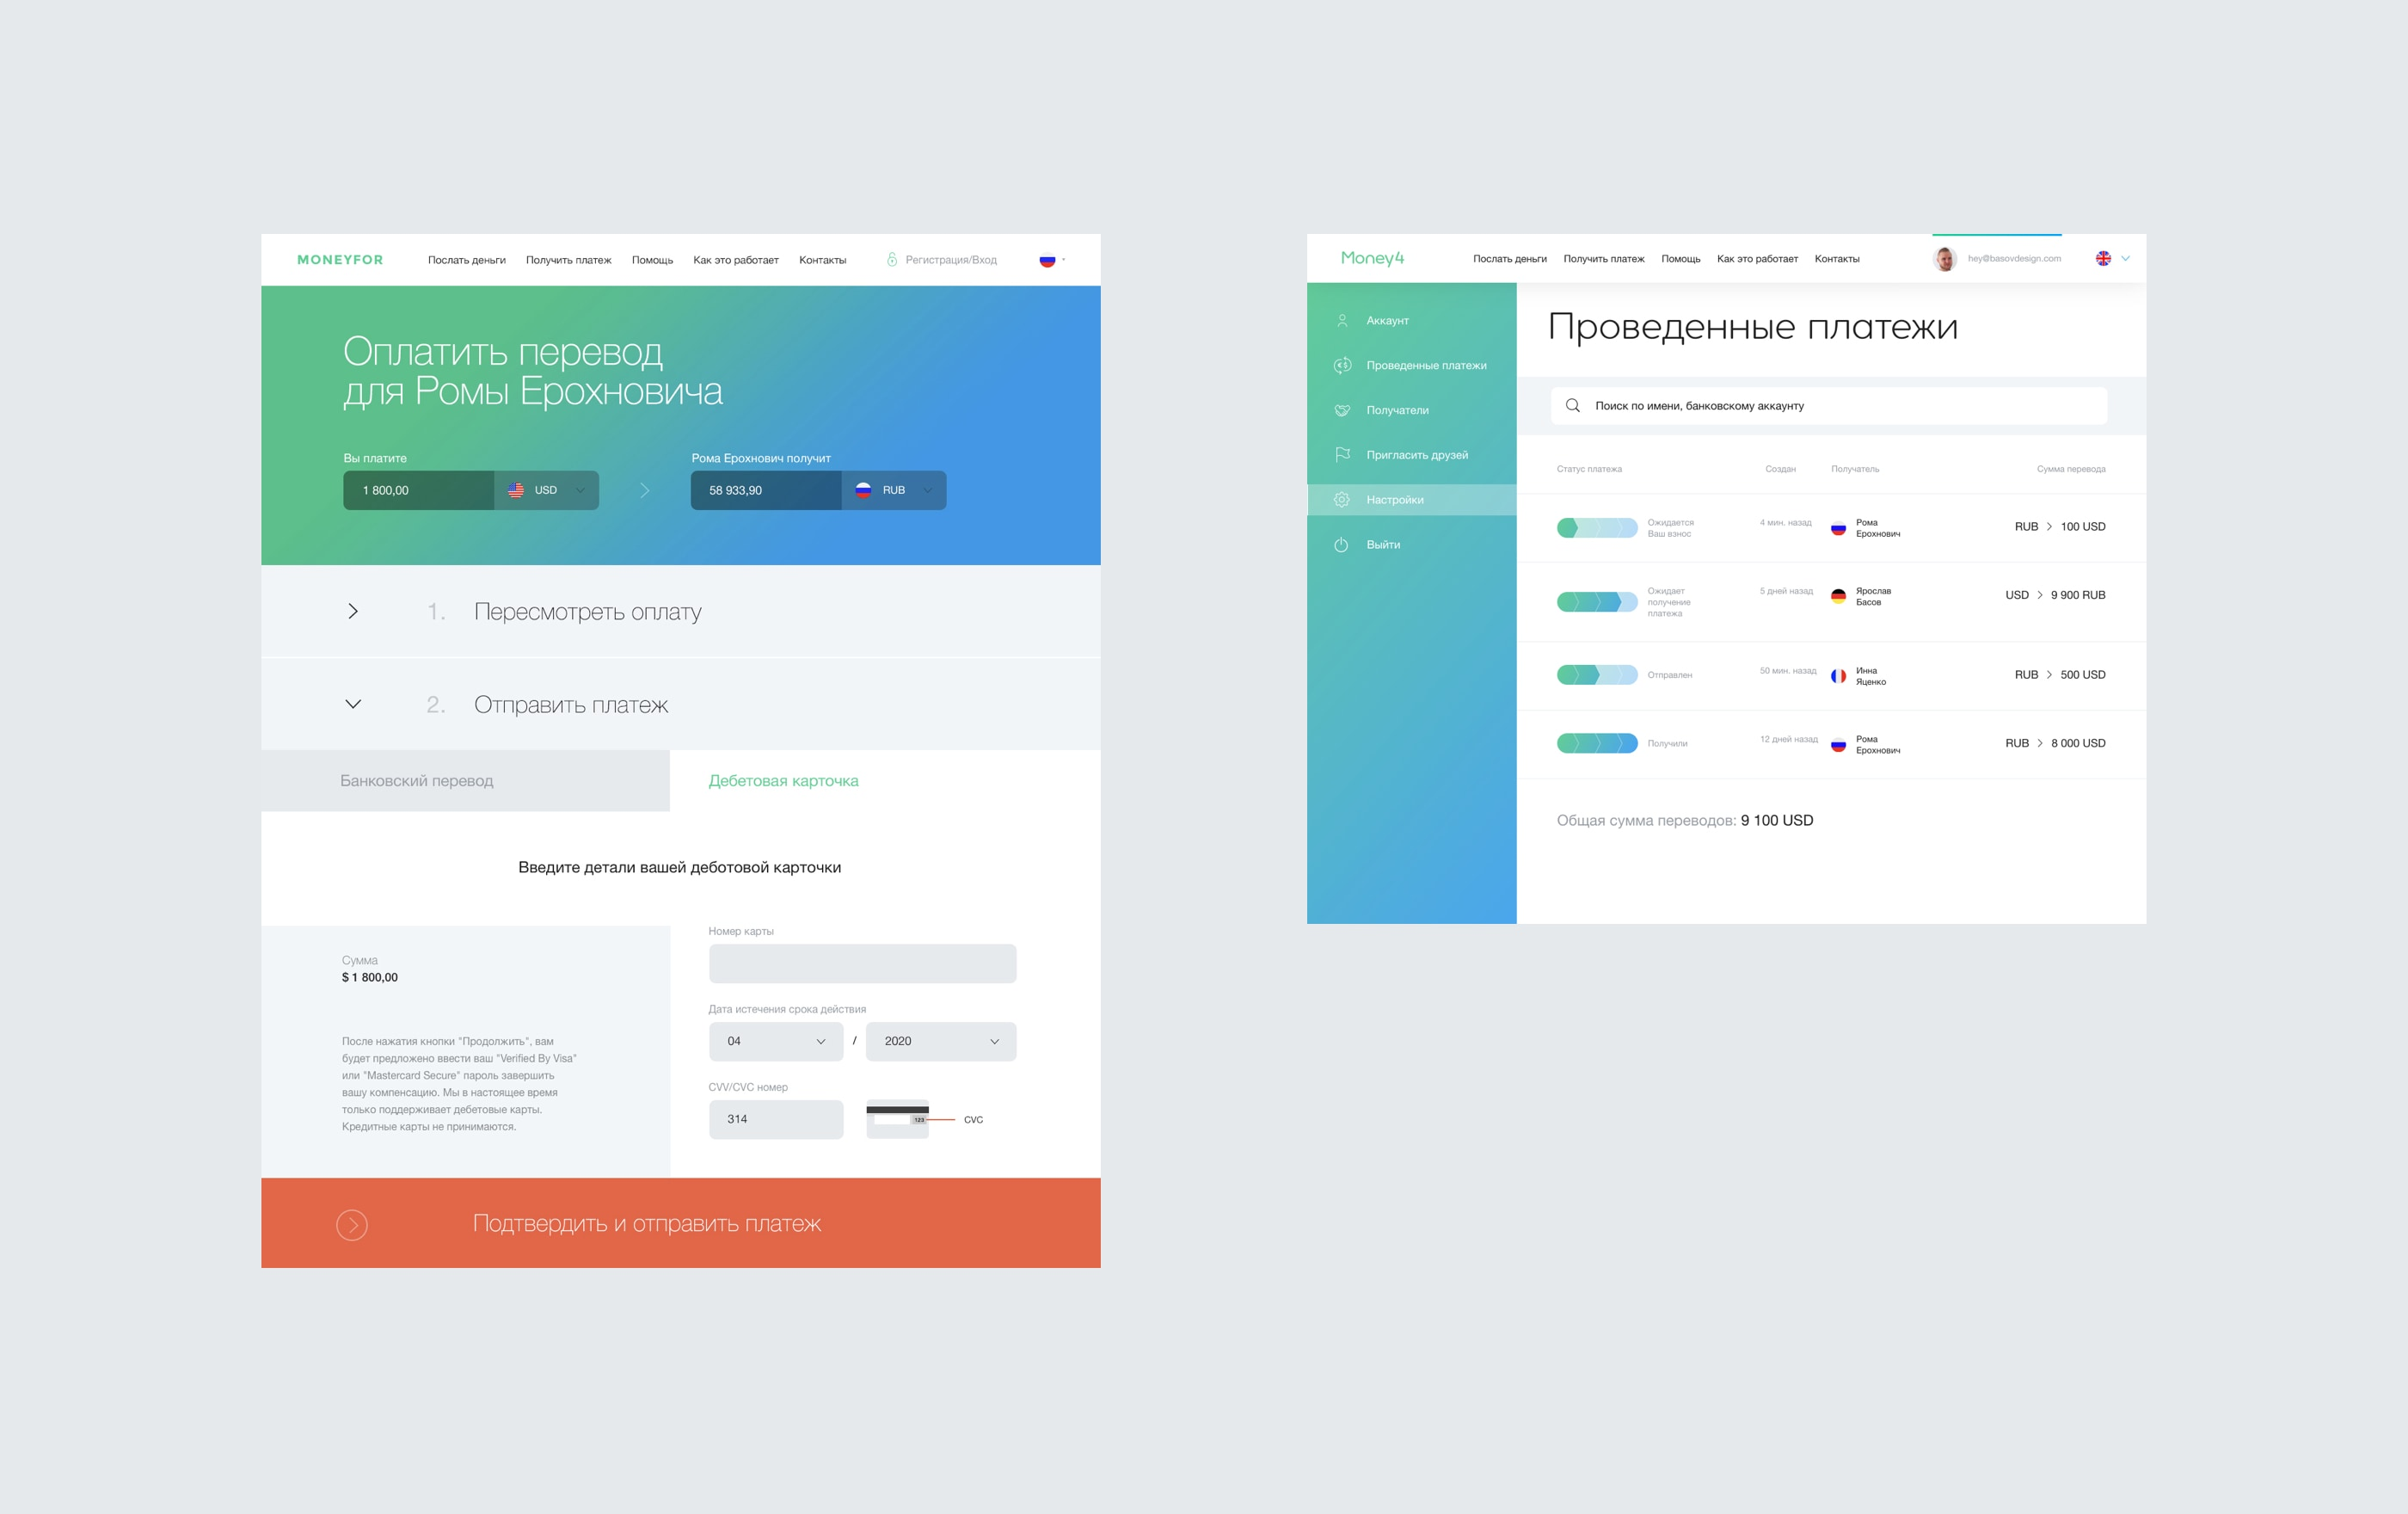 14_payments made page_Mobile App and website Money Nebeus_Money4_by_basov_design_